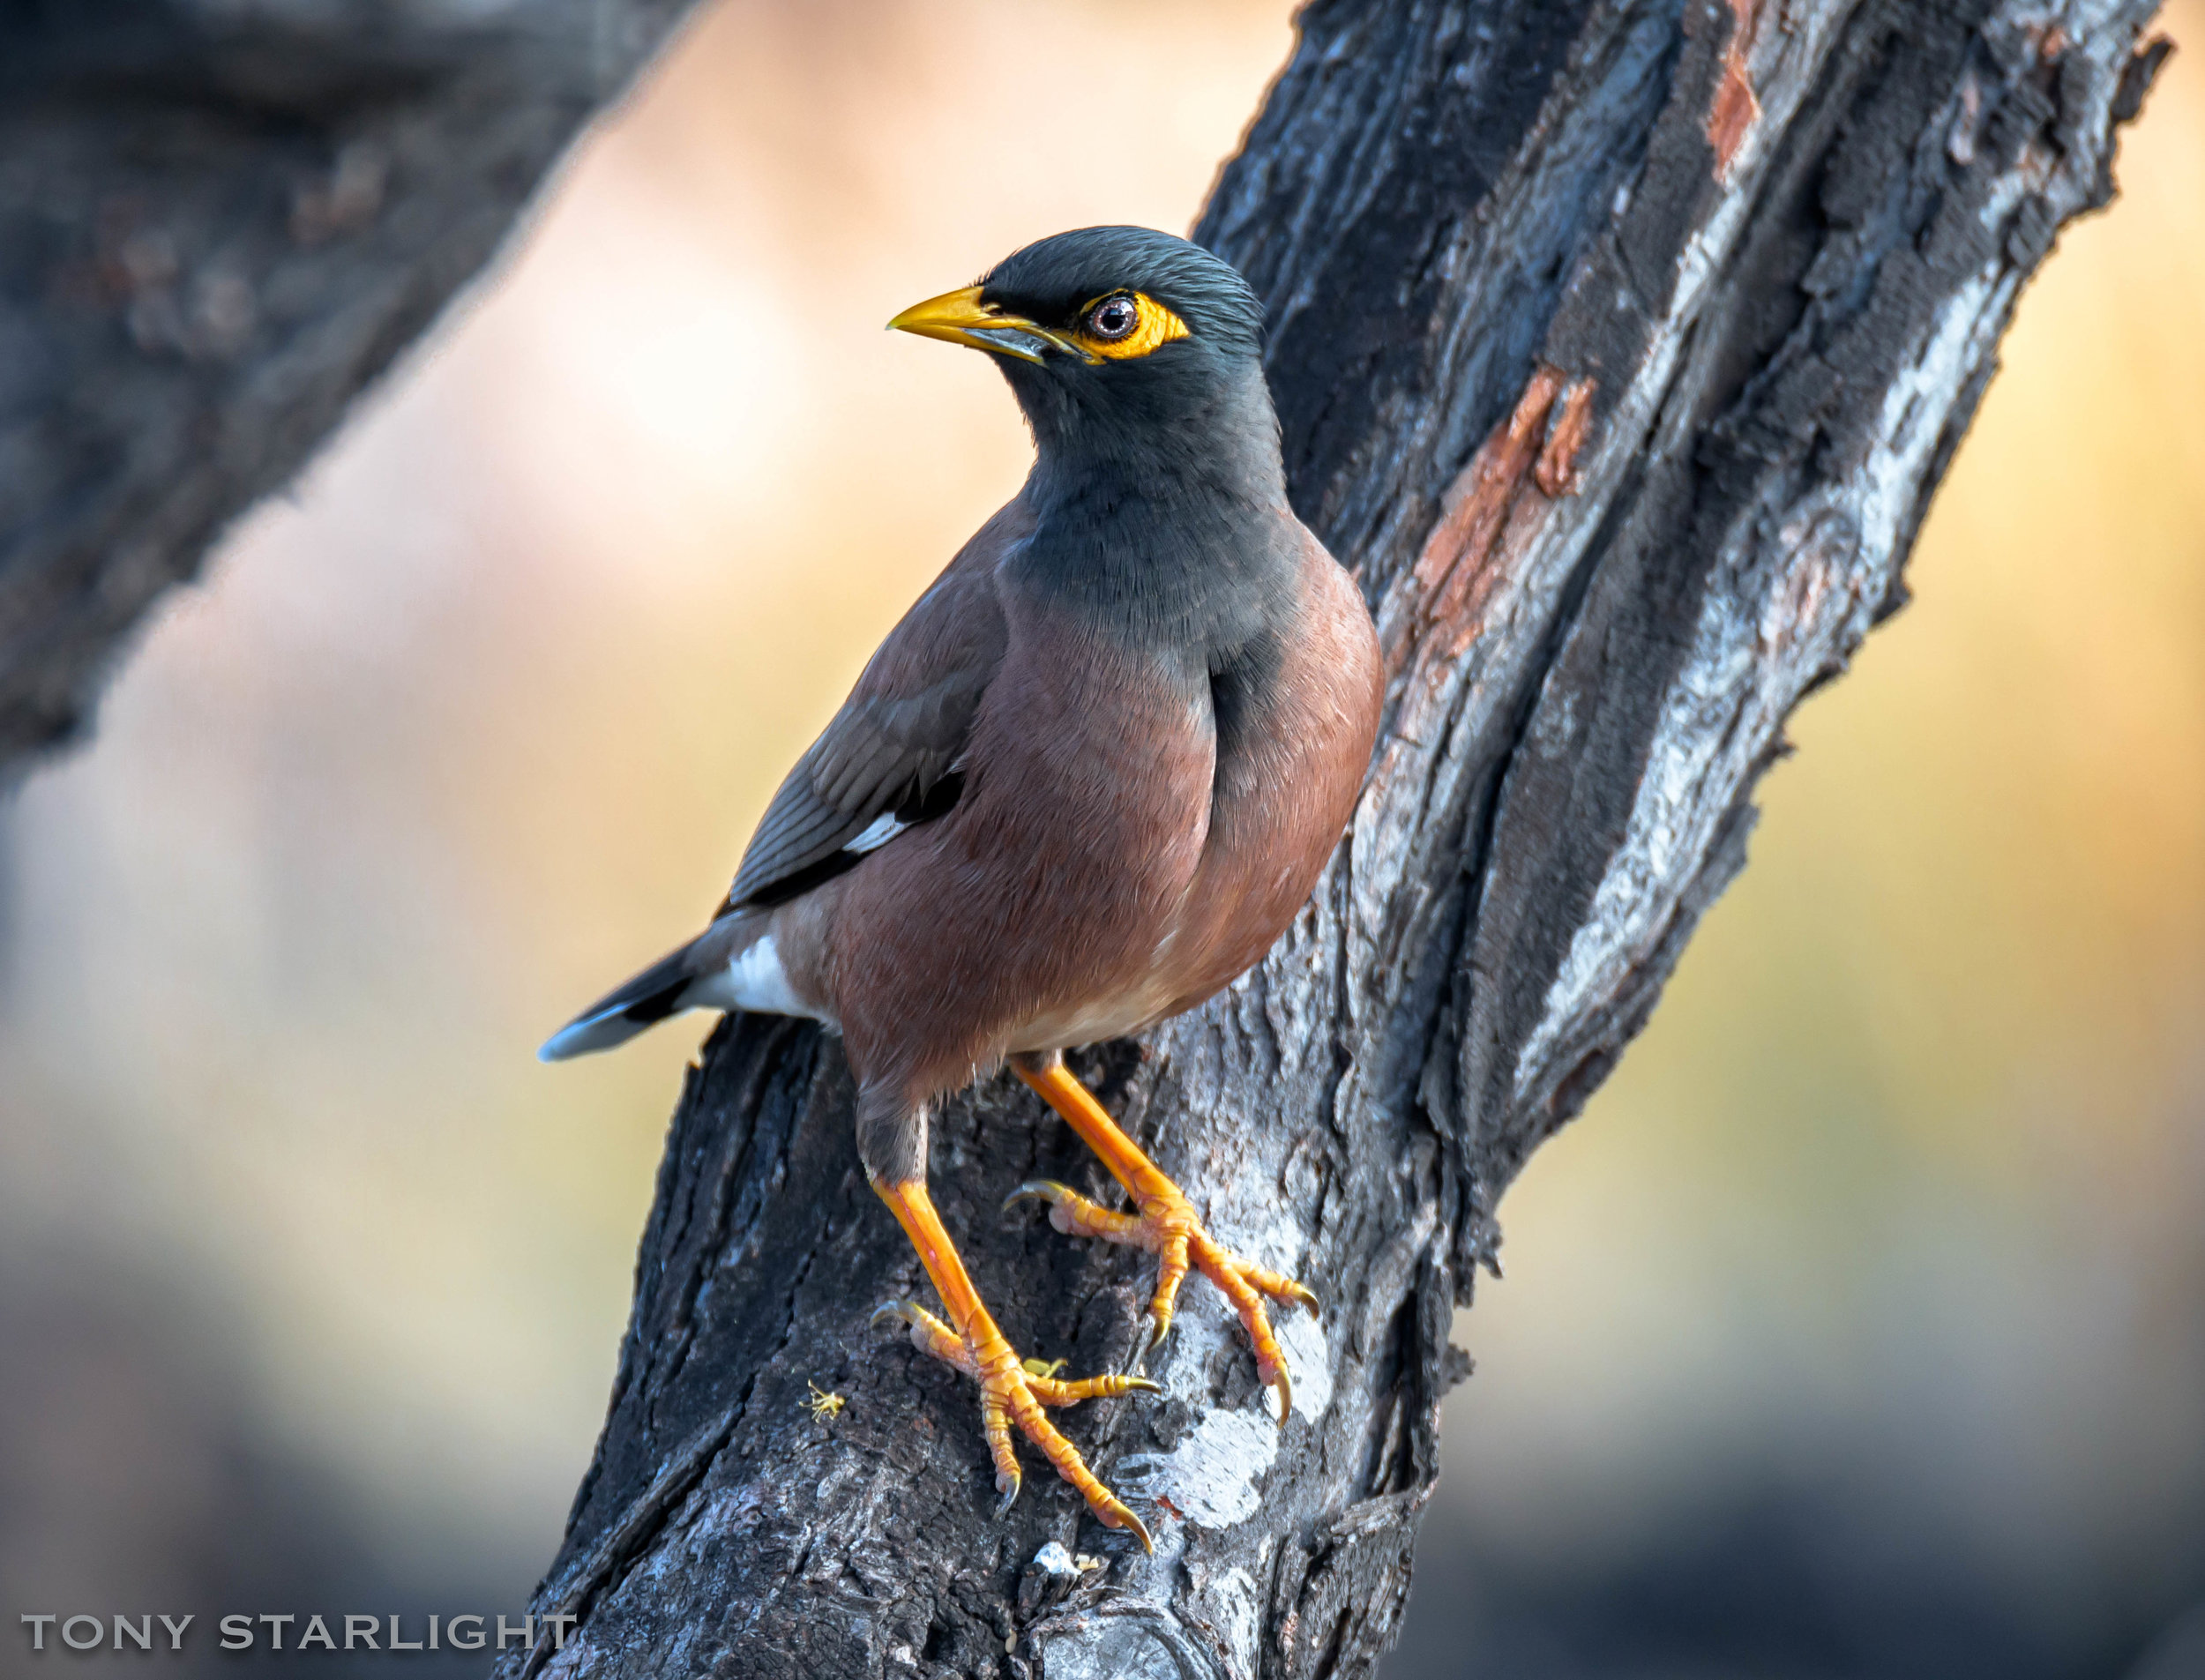 Common Myna - Seen at the airport in a tree by the baggage claim. I scrambled to get the camera out of my luggage. Lucky I did, too. I only saw another 13,437 Mynas over the course of the next week.